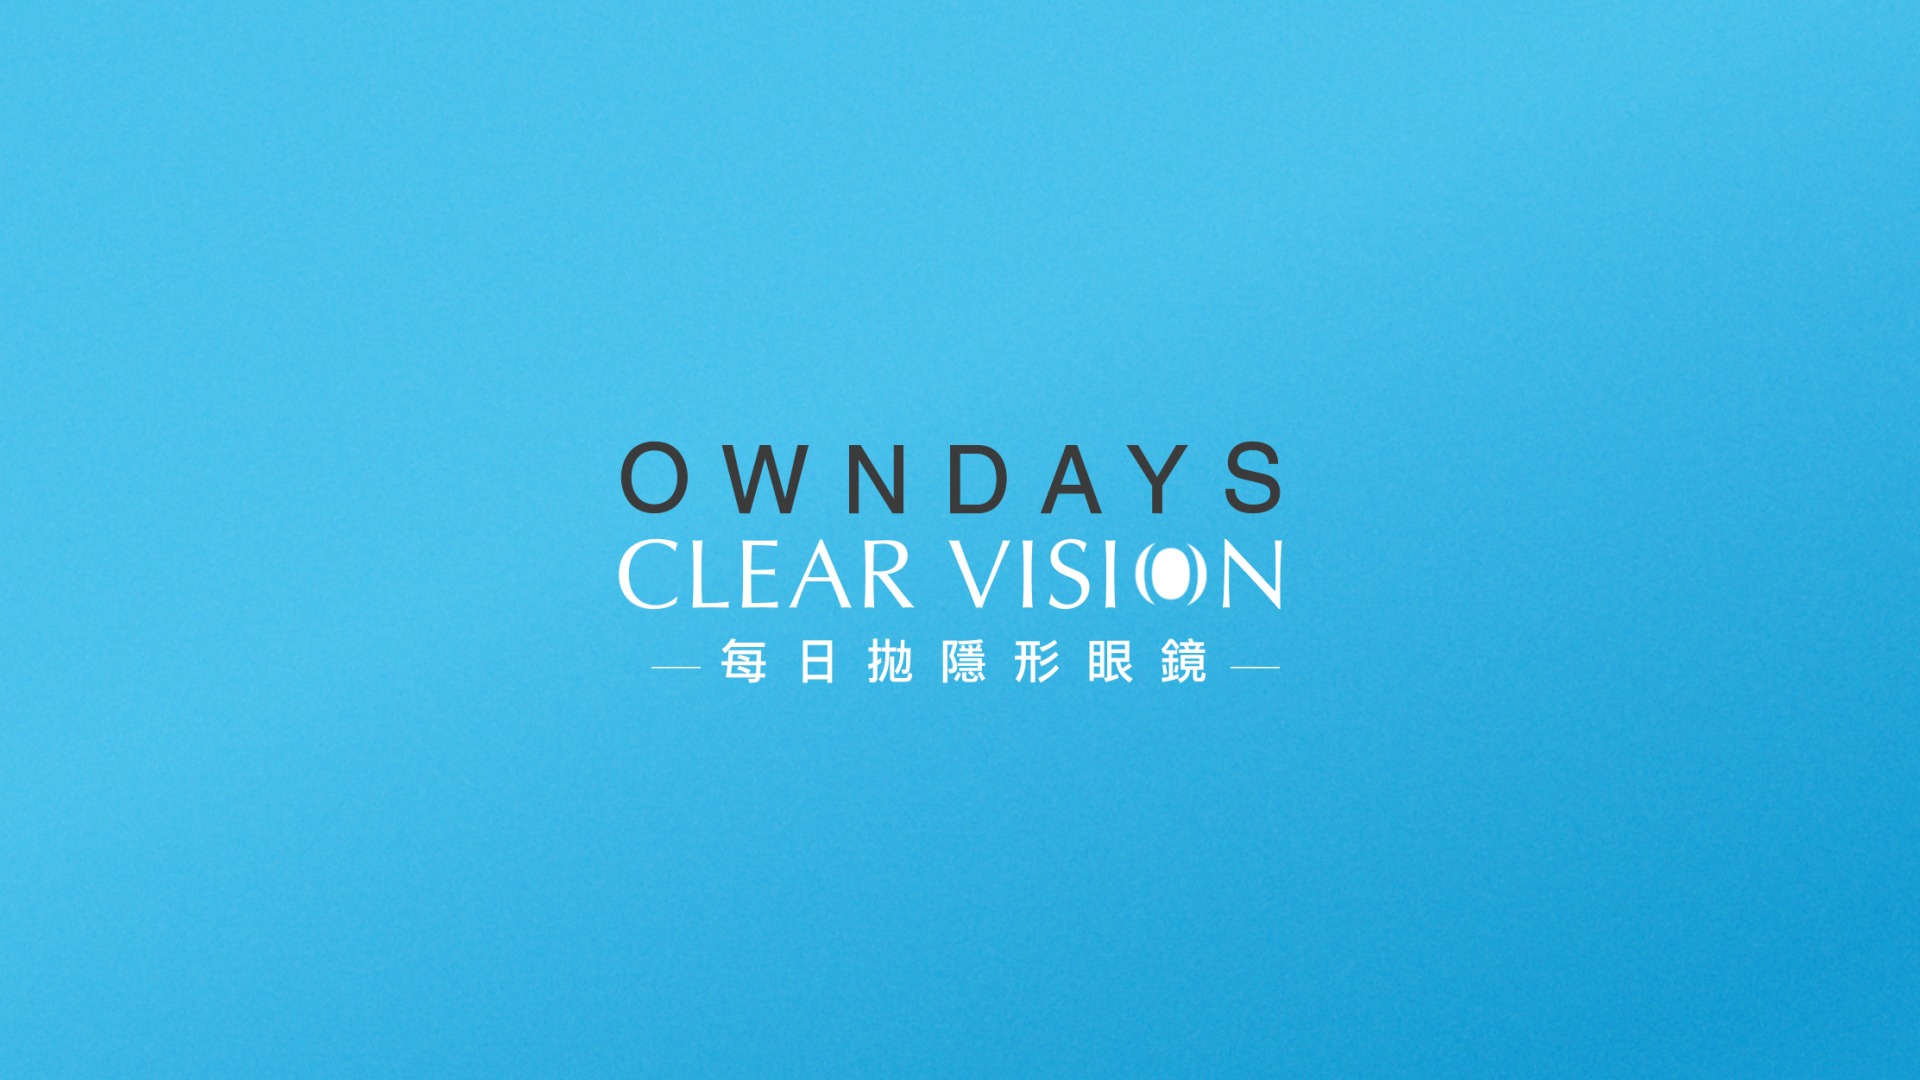 OWNDAYS CLEAR VISION MOVIE